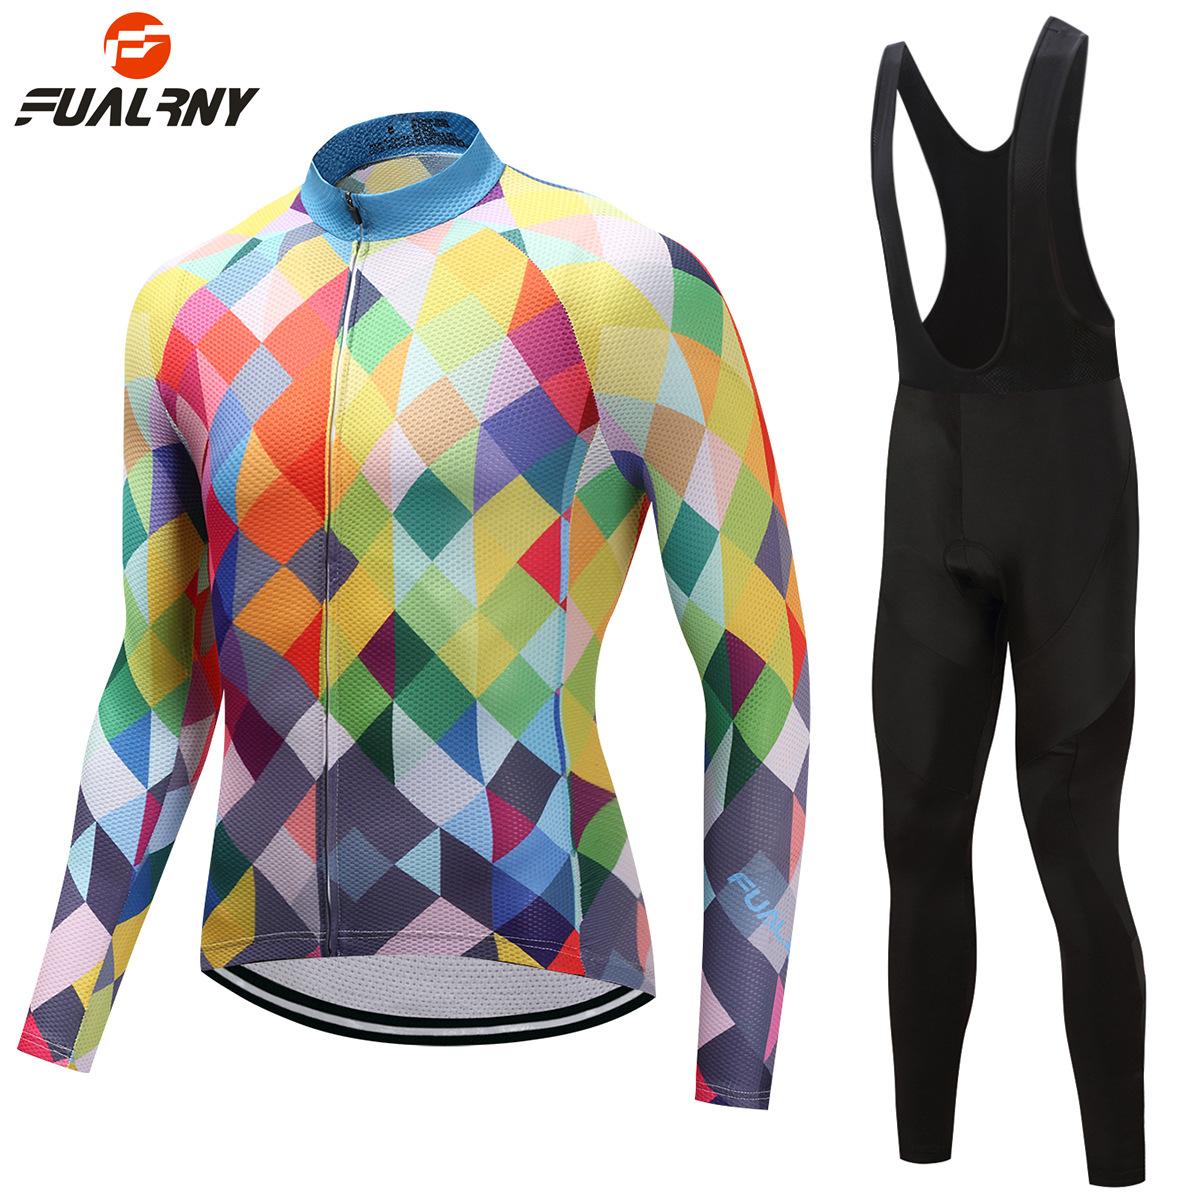 FUALRNY Pro Fabric Breathable Cycling Suit Jersey Long Sleeve Set Men Women Bicycle Cycling Clothing Bike Wear Maillot Ropa Set ckahsbi winter long sleeve men uv protect cycling jerseys suit mountain bike quick dry breathable riding pants new clothing sets